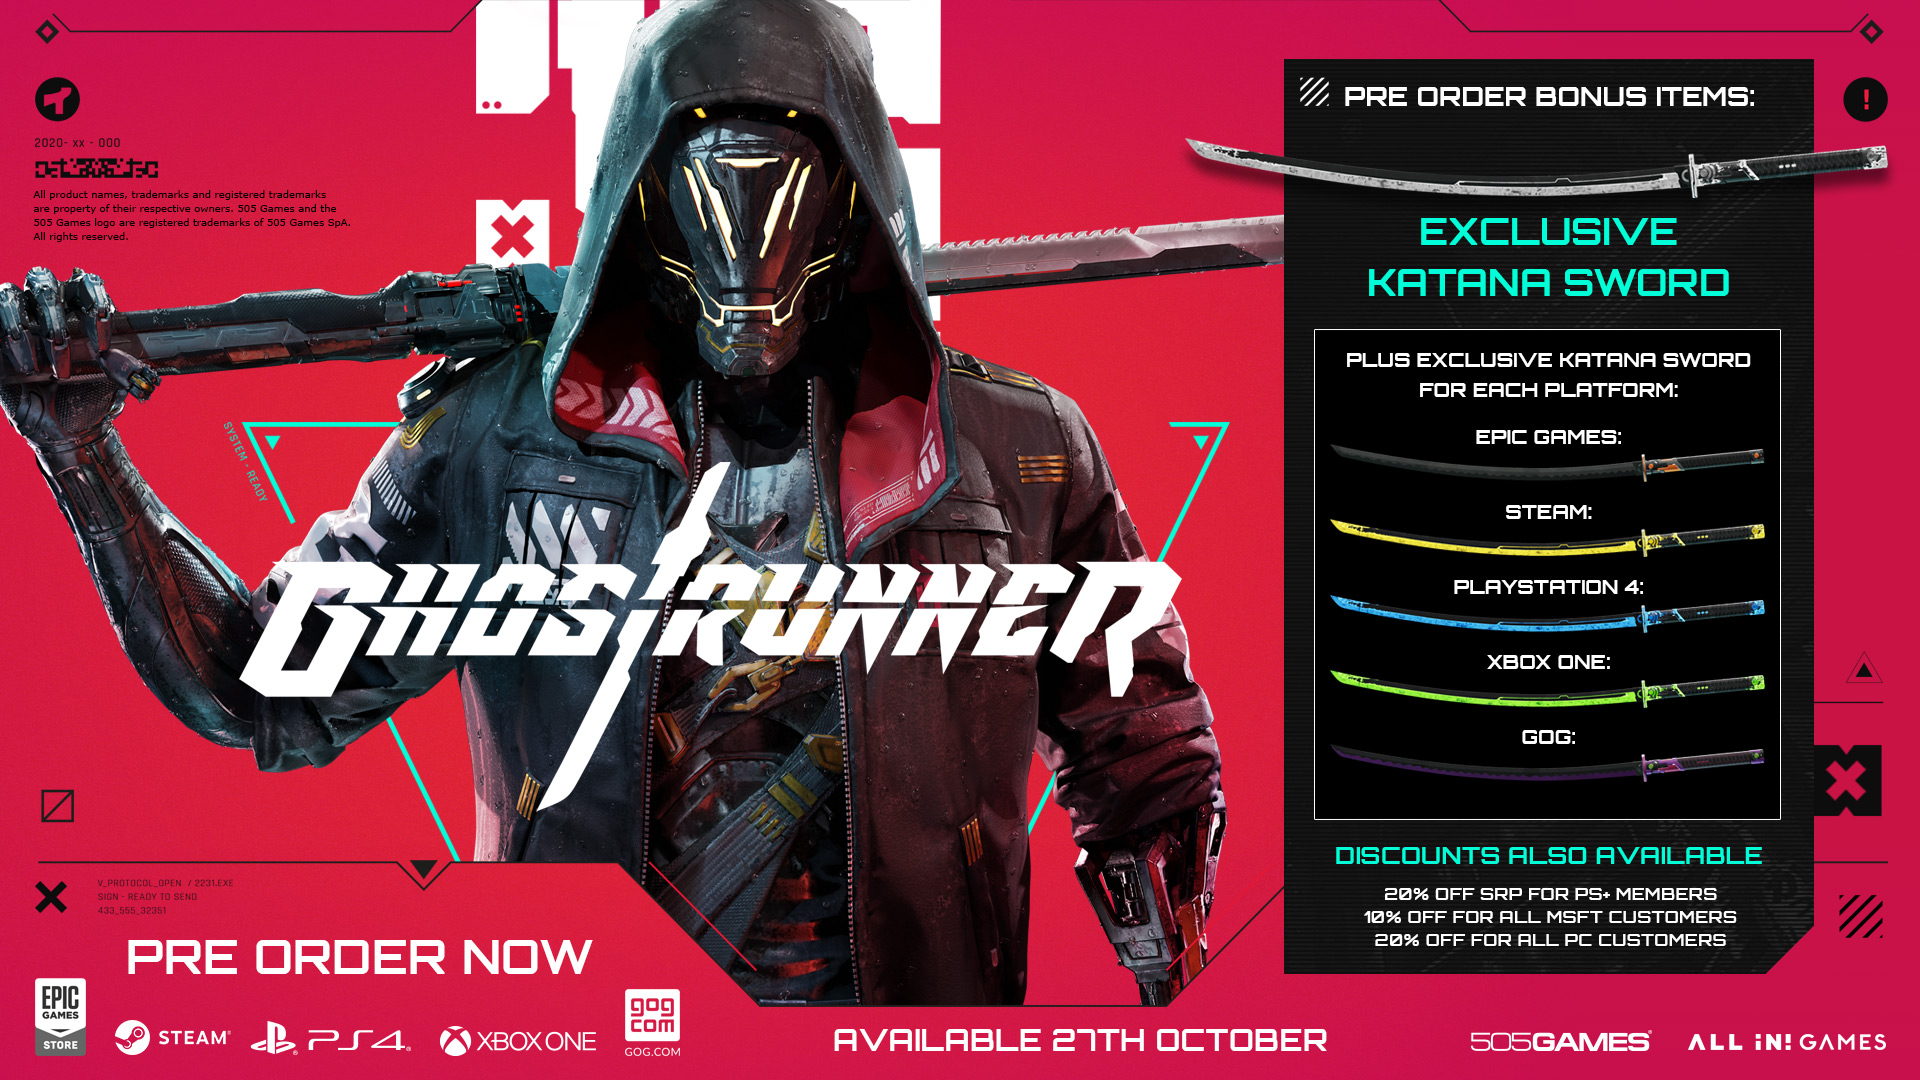 Cyberpunk Ninja Game Ghostrunner Gets October Release Date